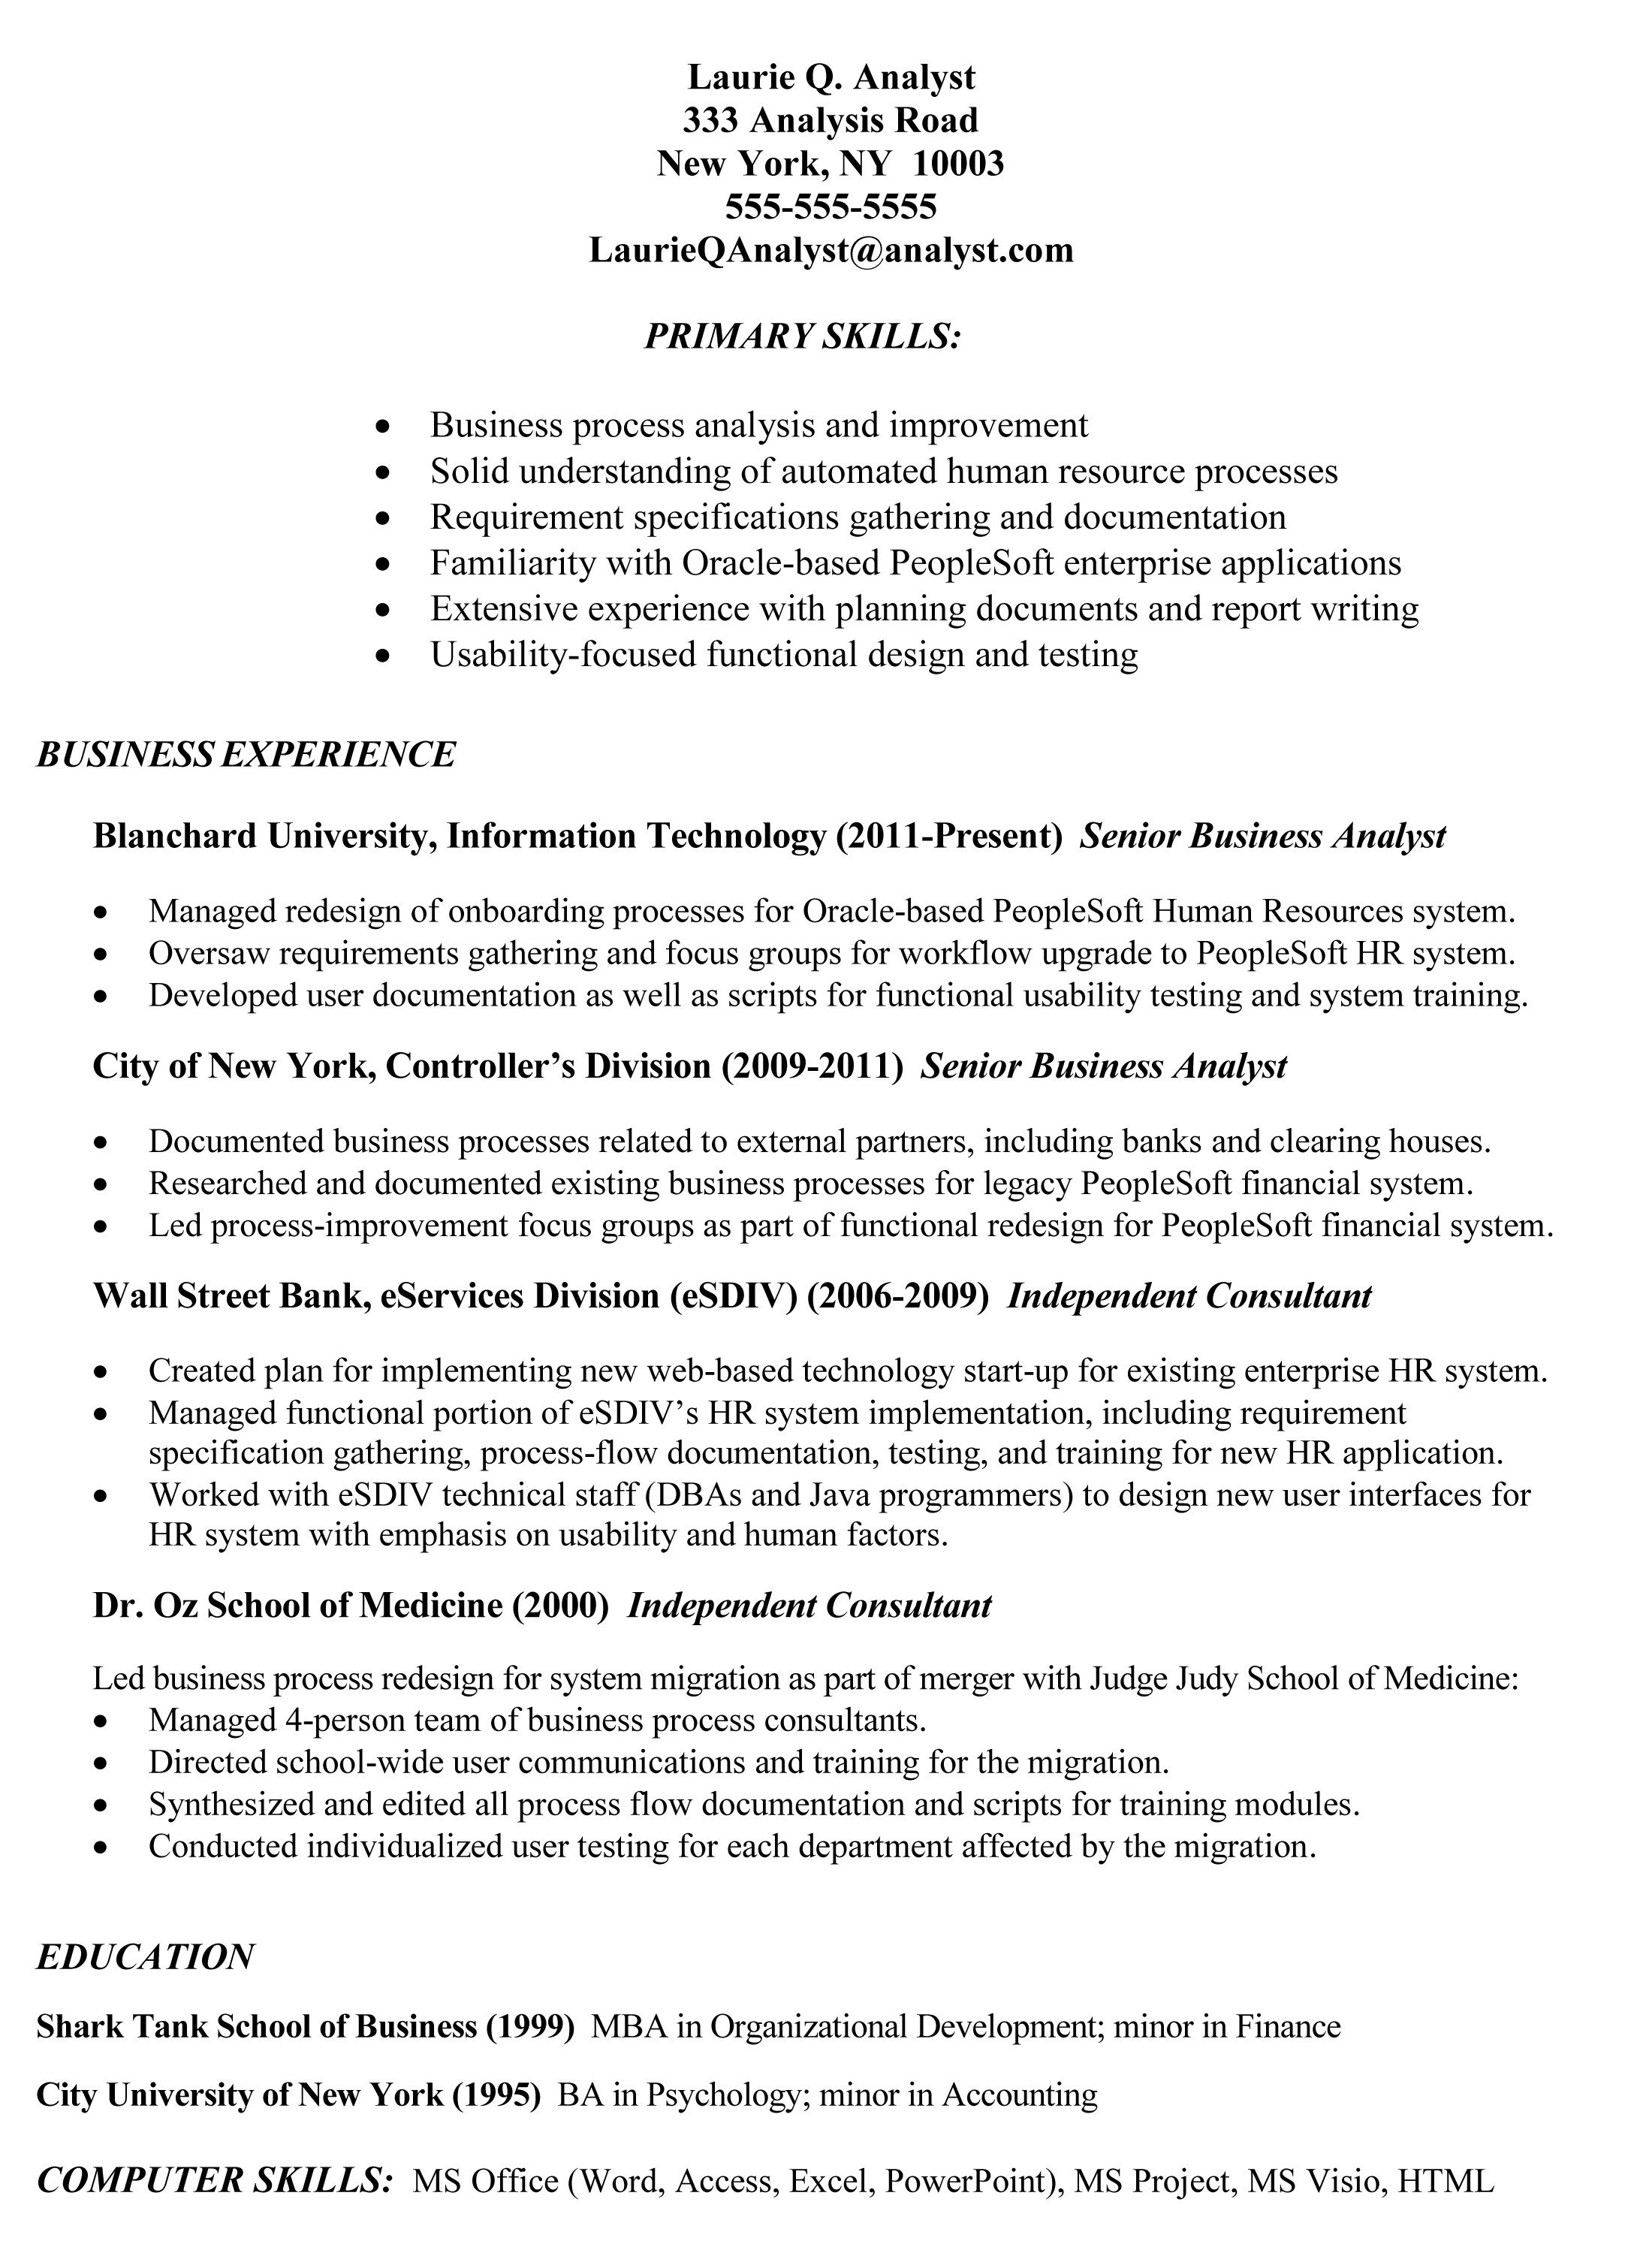 Pin by topresumes on latest resume pinterest business analyst job resume template business analyst resume secrets you need to know business resum maxwellsz